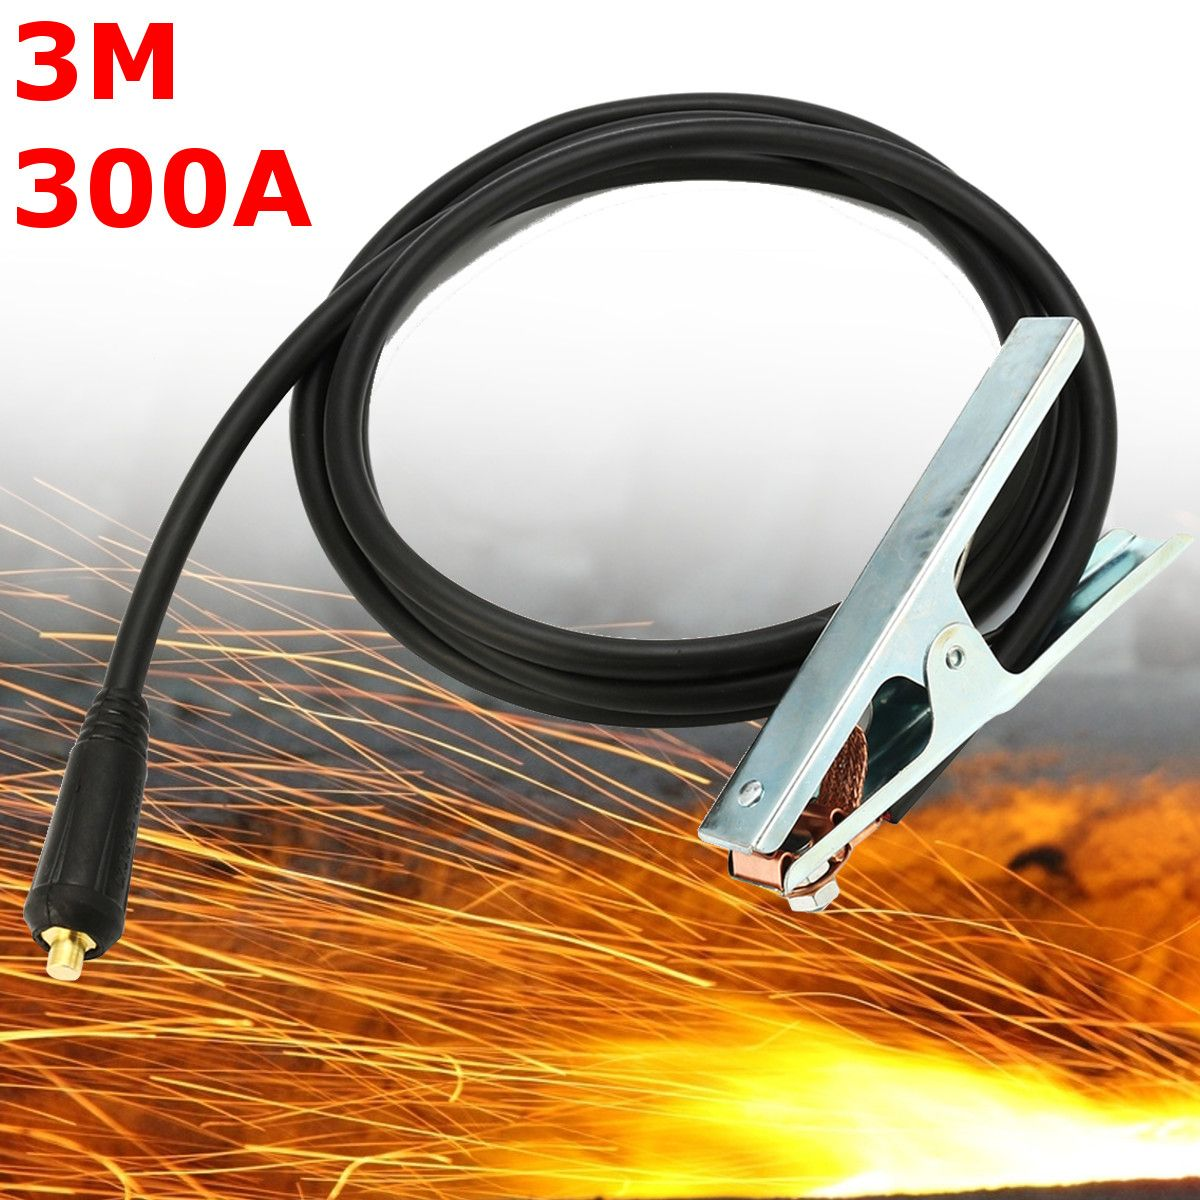 300A Groud Welding Earth Cable Clamp Clip For MIG TIG ARC Welder 3M/ Cable 10-25 Plug Weld Holder Welding Soldering Supply Tool300A Groud Welding Earth Cable Clamp Clip For MIG TIG ARC Welder 3M/ Cable 10-25 Plug Weld Holder Welding Soldering Supply Tool